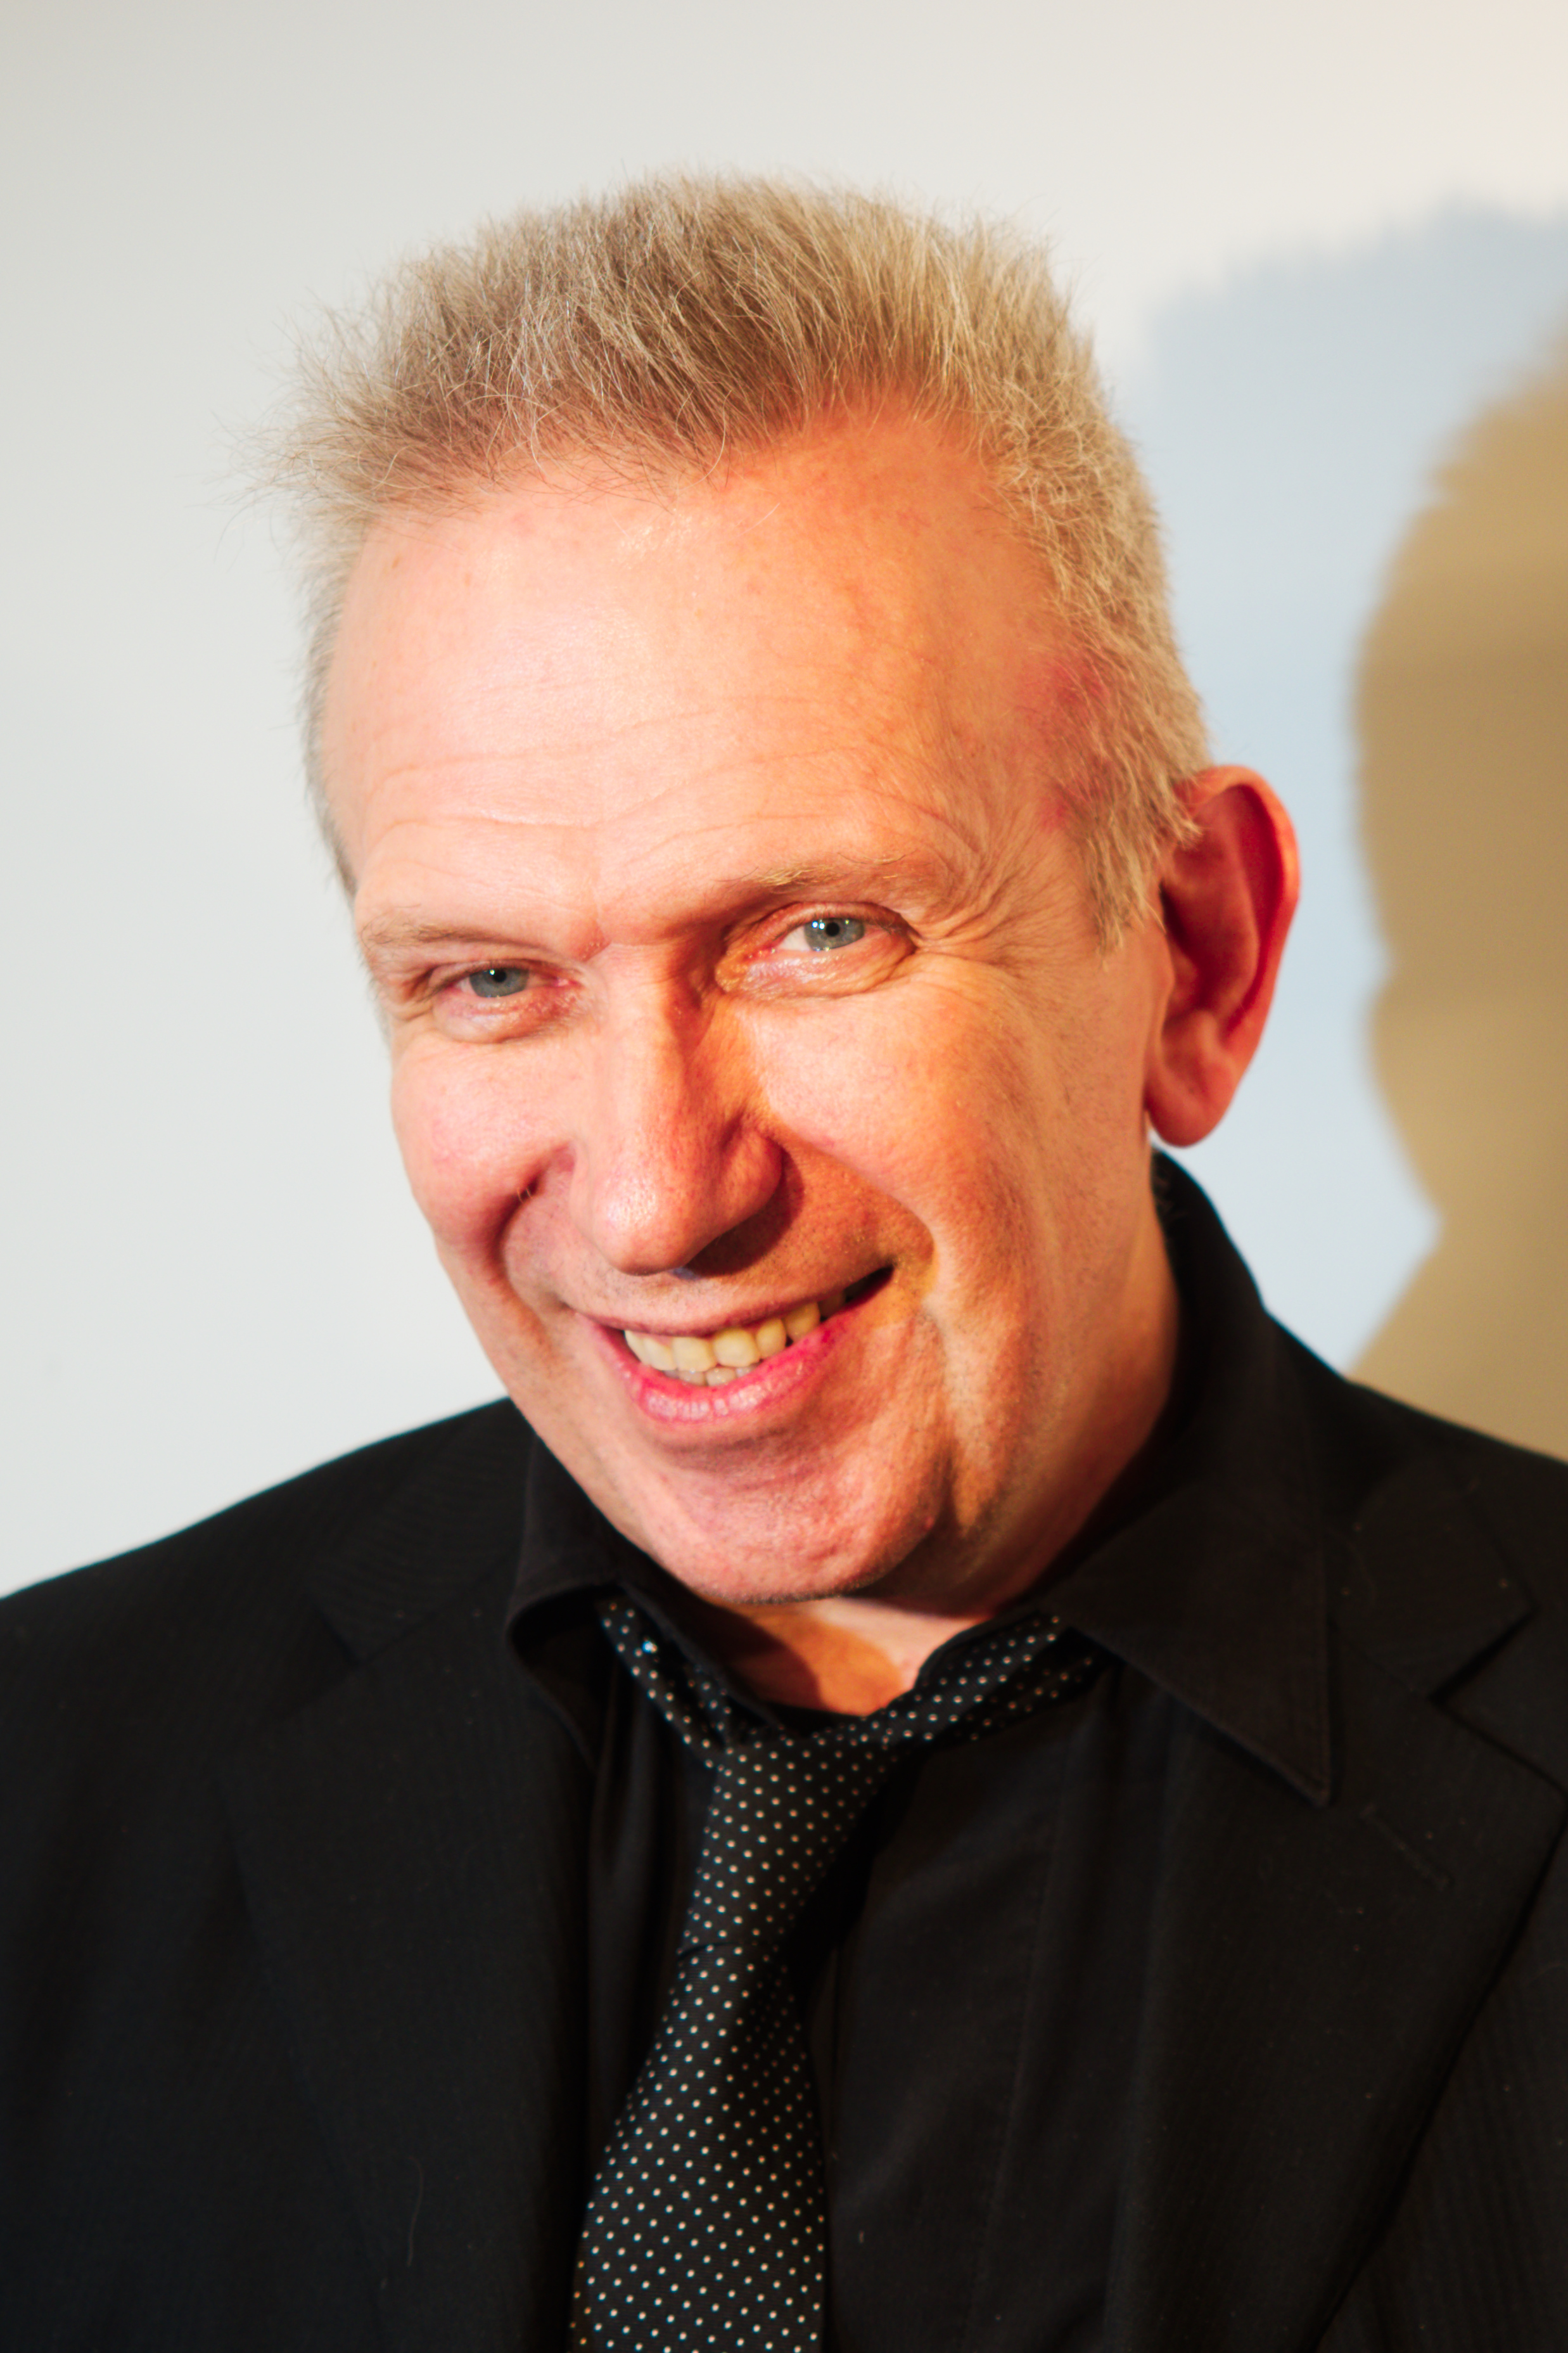 Jean-Paul Gaultier By Netaction (Own work) CC BY-SA  via Wikimedia Commons